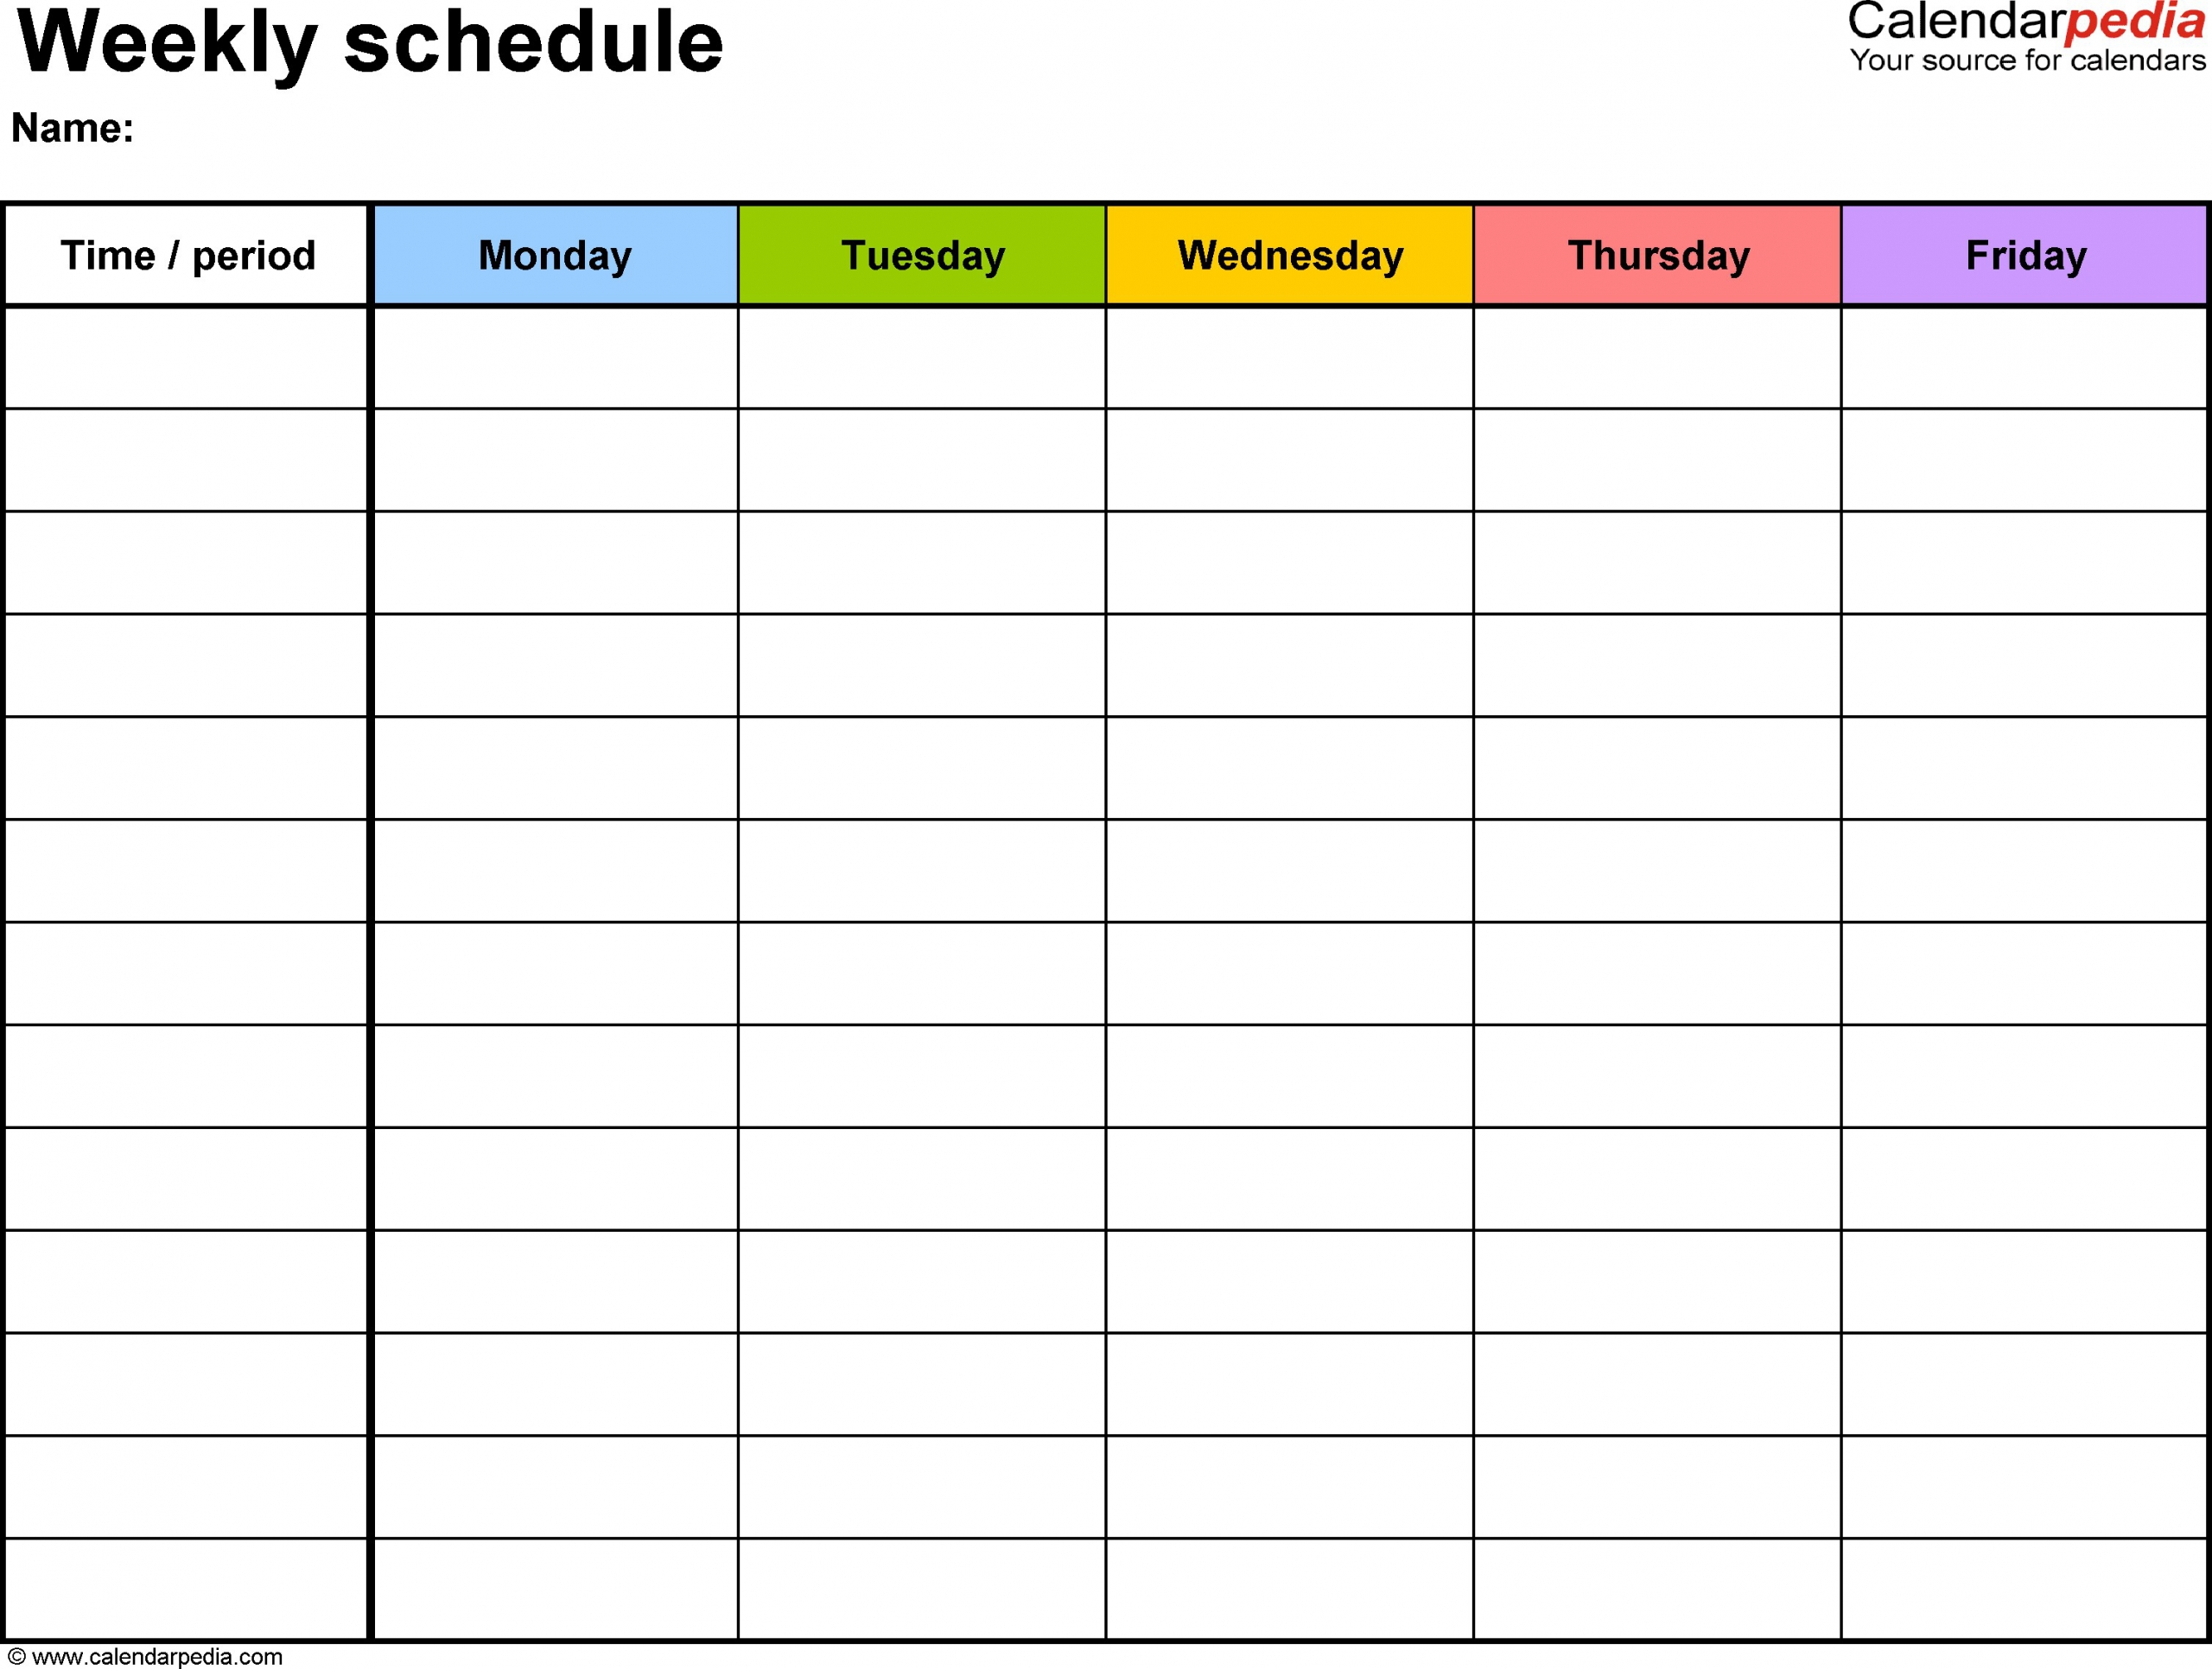 Monday Friday Calendar | Daily Schedule Template, Daily